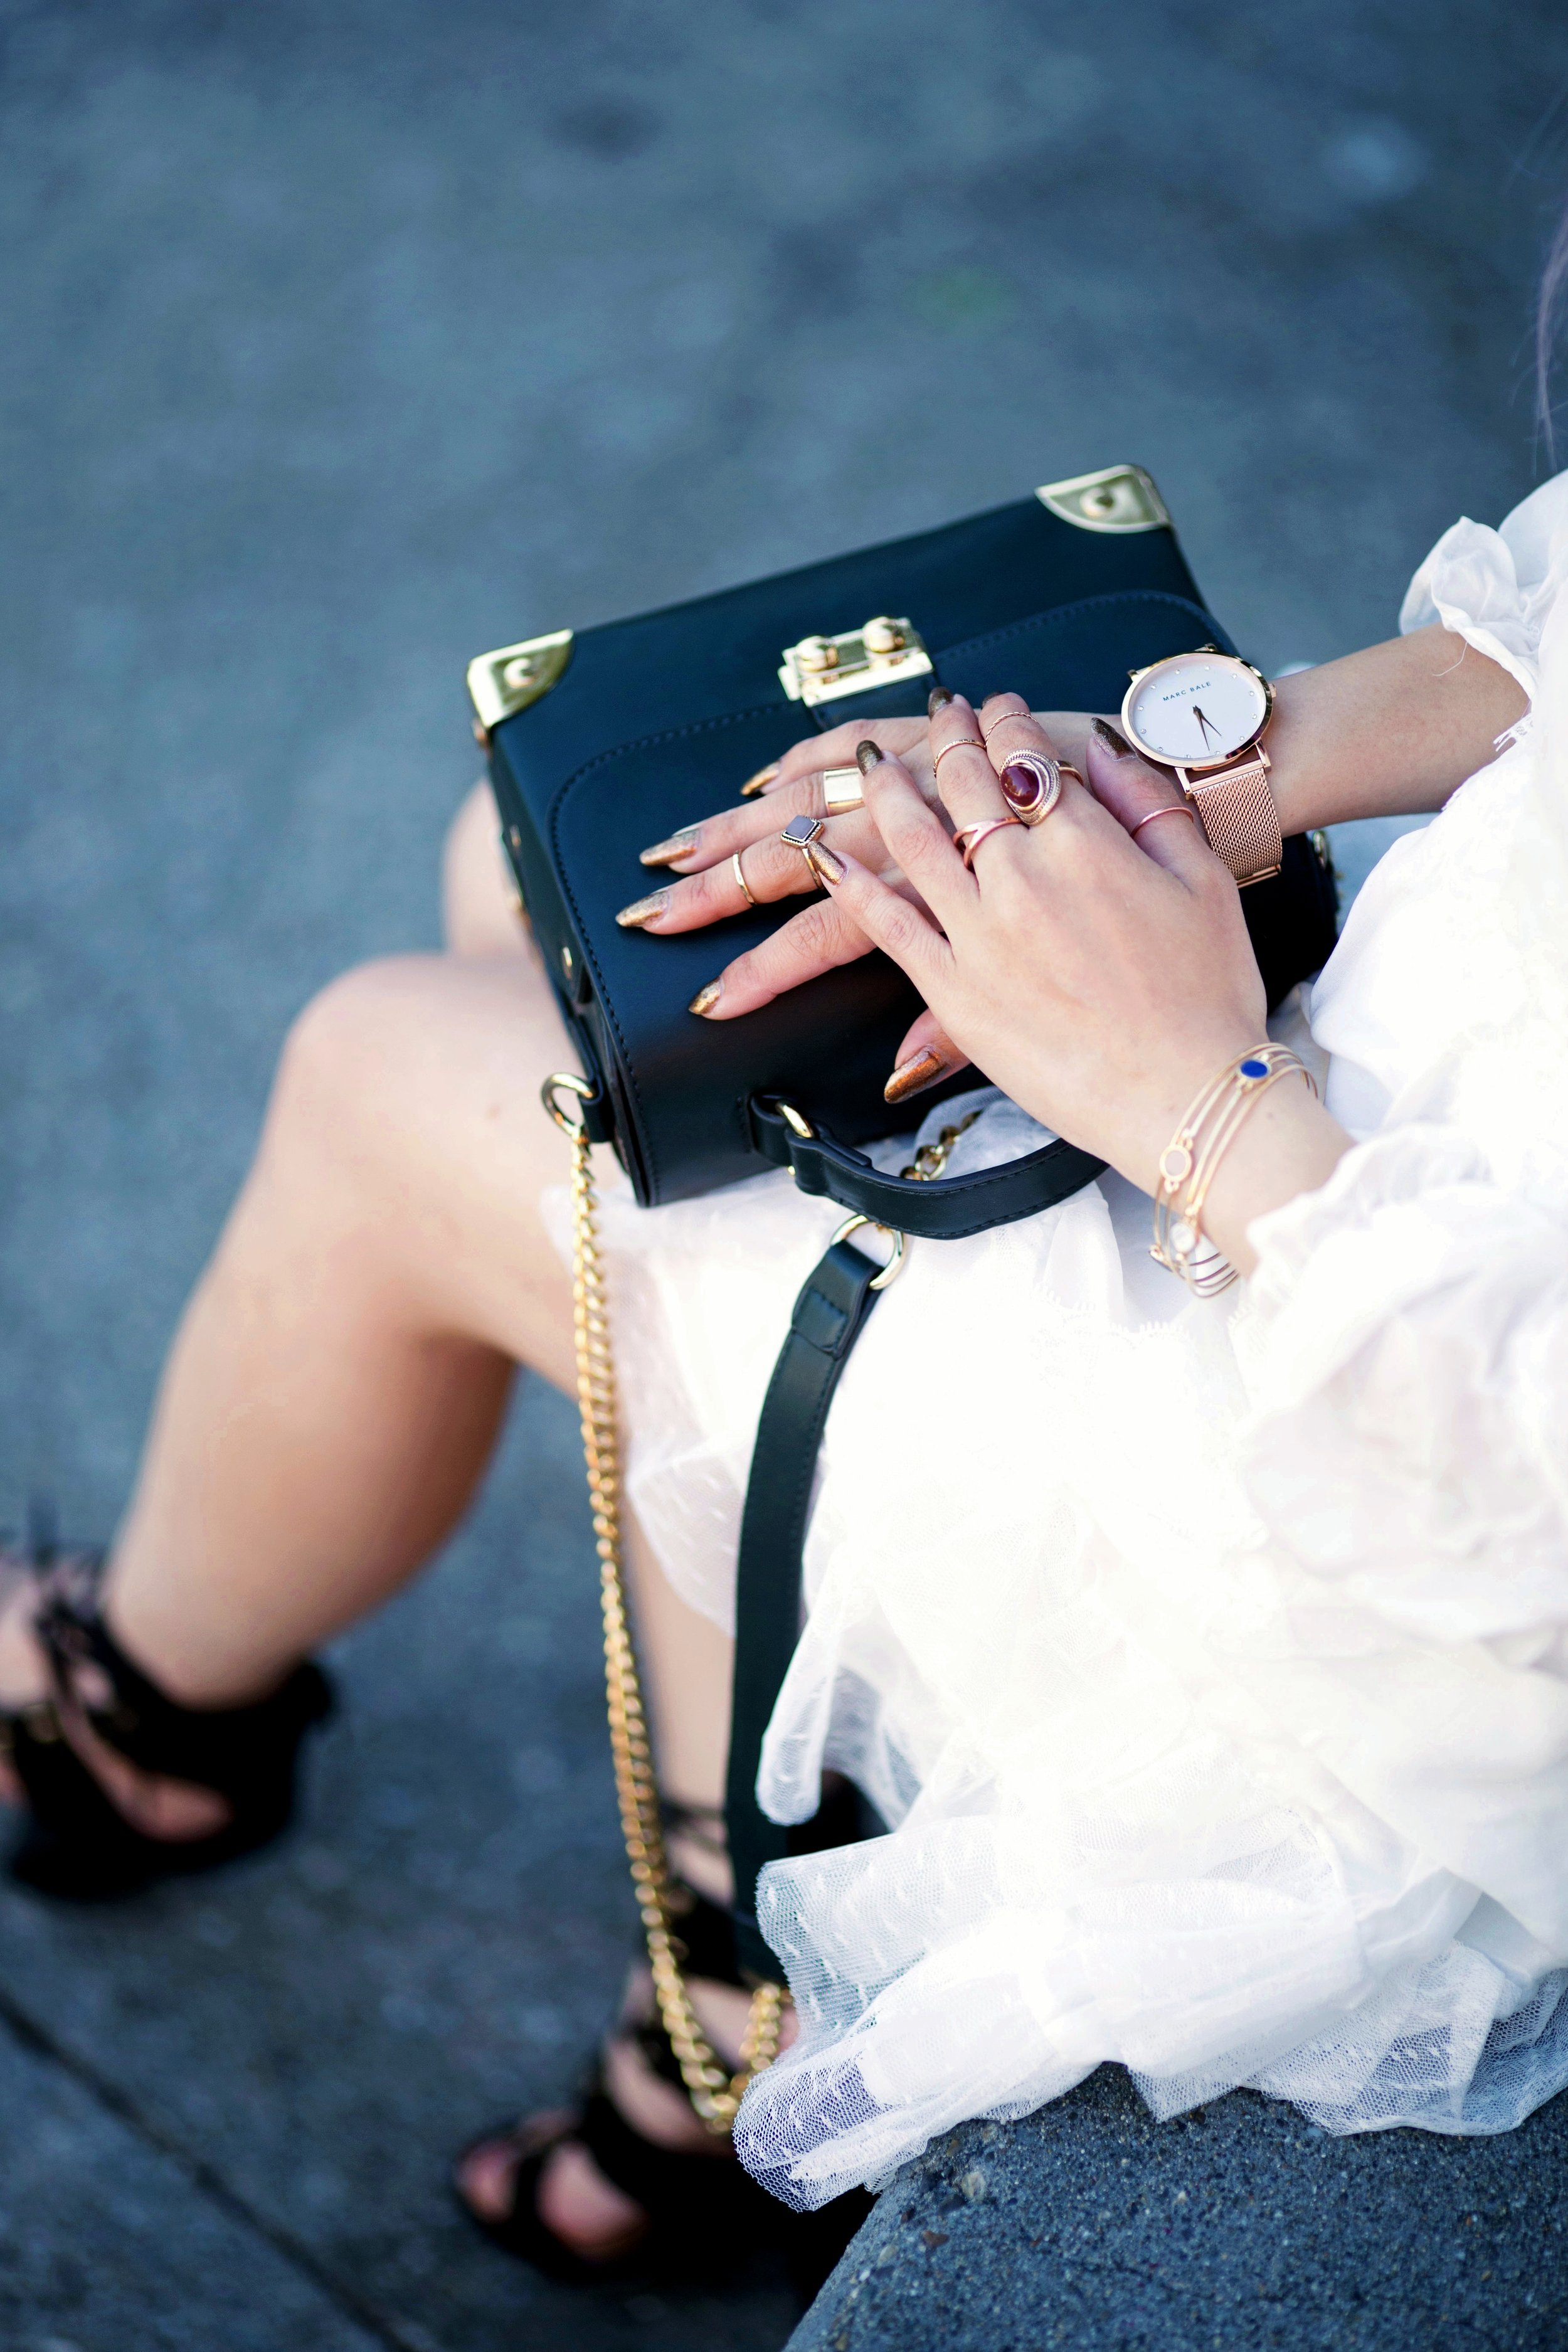 DEZZAL Letter Print White Biker Jacket & Lace Hem Layered Dress_Forever 21 Olive Bag_White Lace Choker_JustFab Lace Up Sandals_Pink Retro Sunglasses_Aikas Love Closet_Seattle Fashion Blogger from Japan_Mermaid Hair_Purple Hair_Gold Stacking Rings_Marc Bale Pink Gold Watch